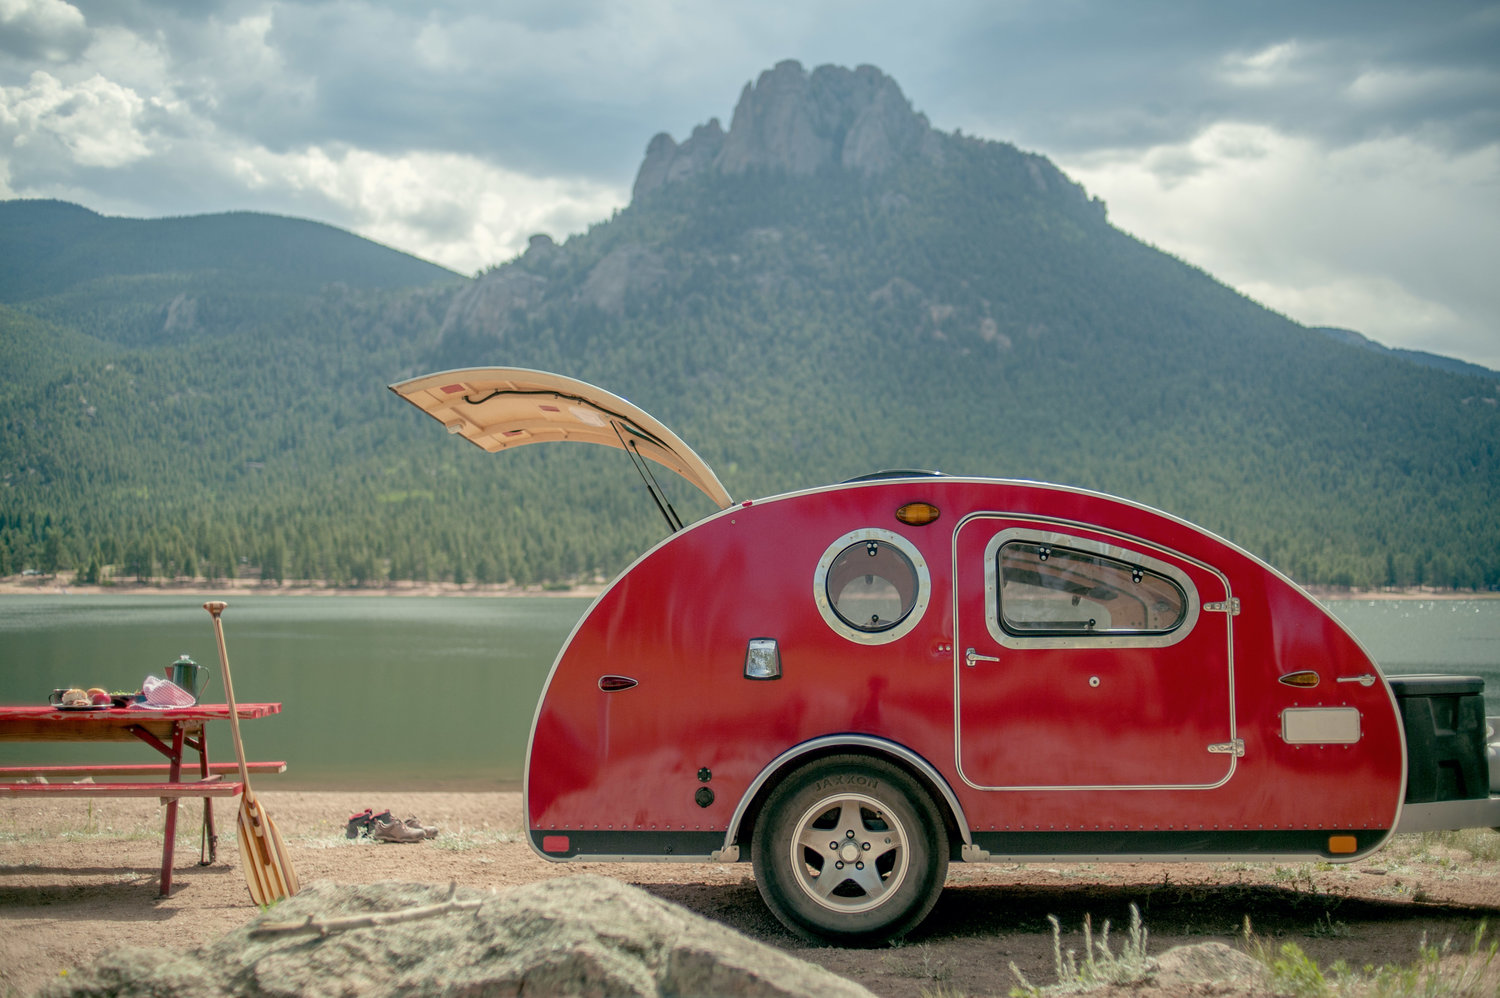 Features | Vistabule Teardrop Trailers